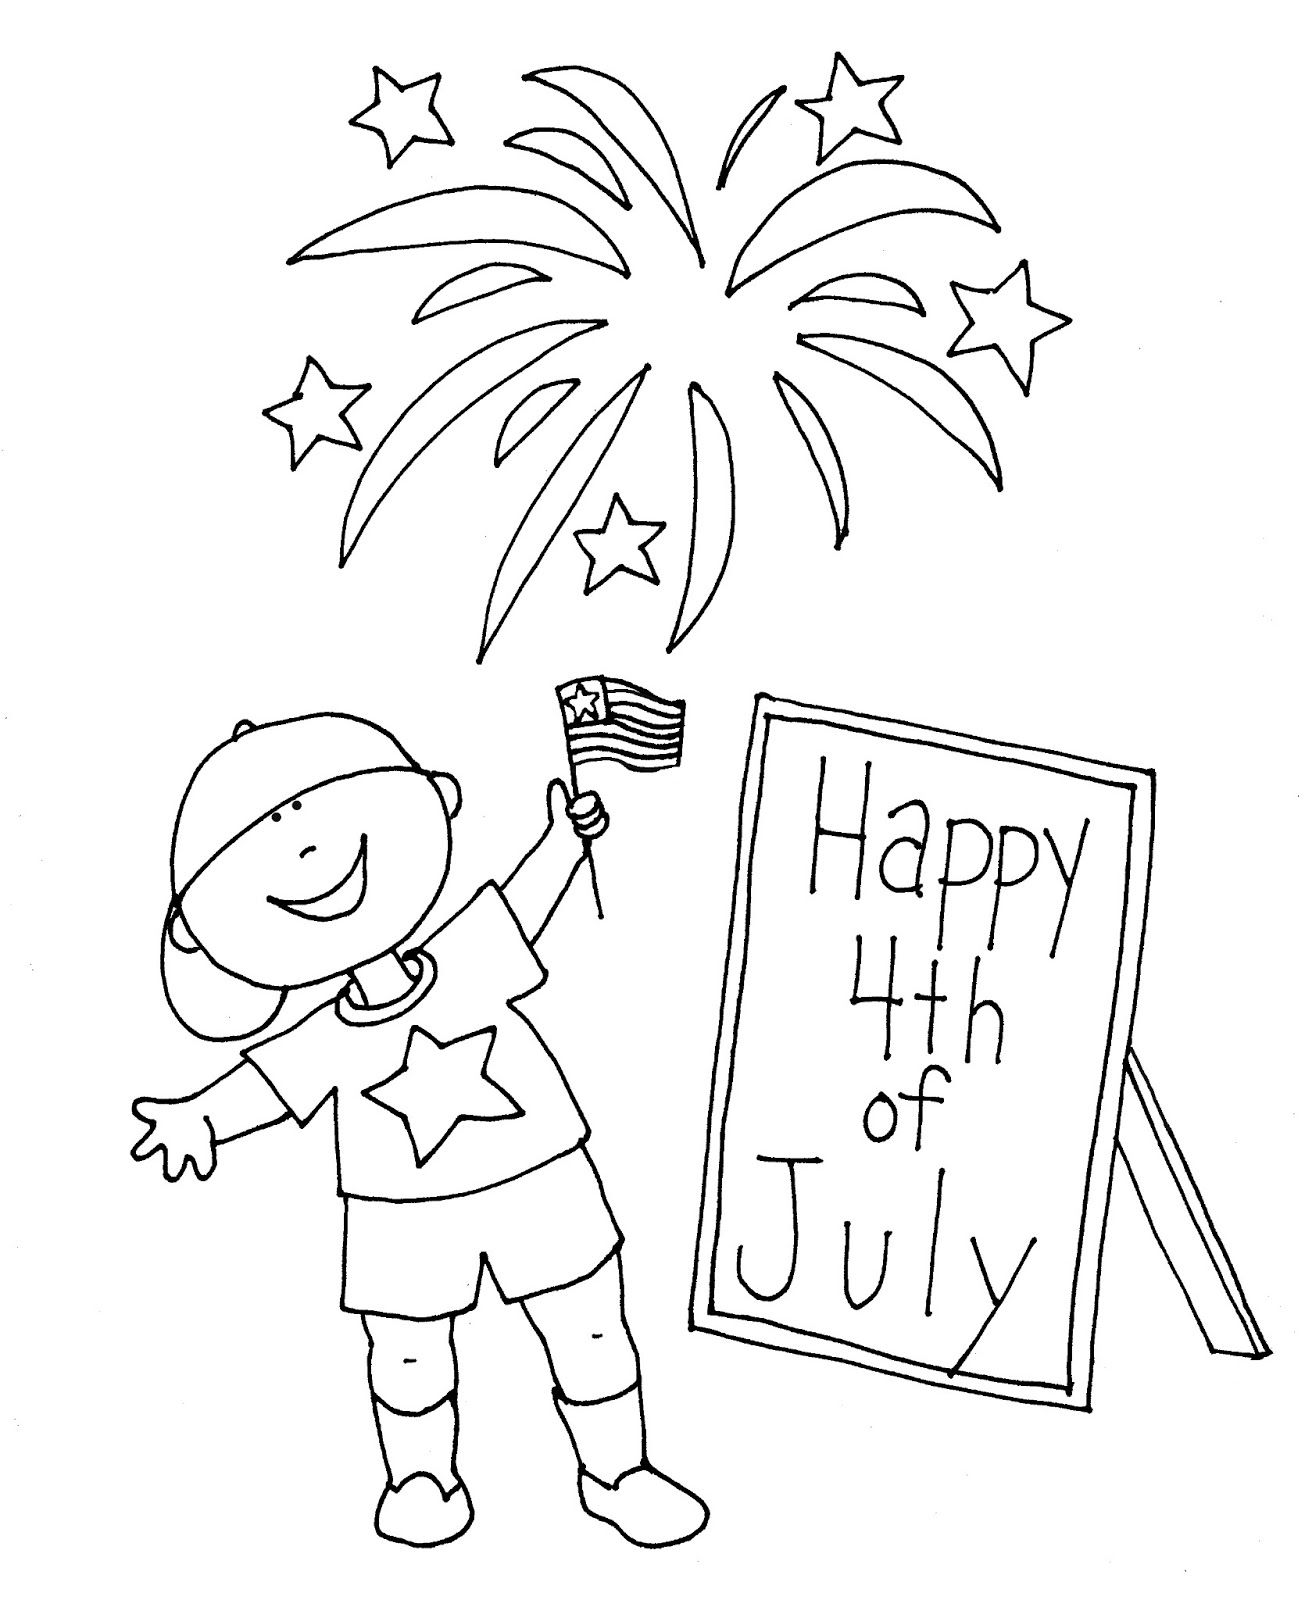 5 Free Fourth Of July Coloring Pages Kindergarten Math Worksheets Everyday Math Coloring Pages For Teenagers